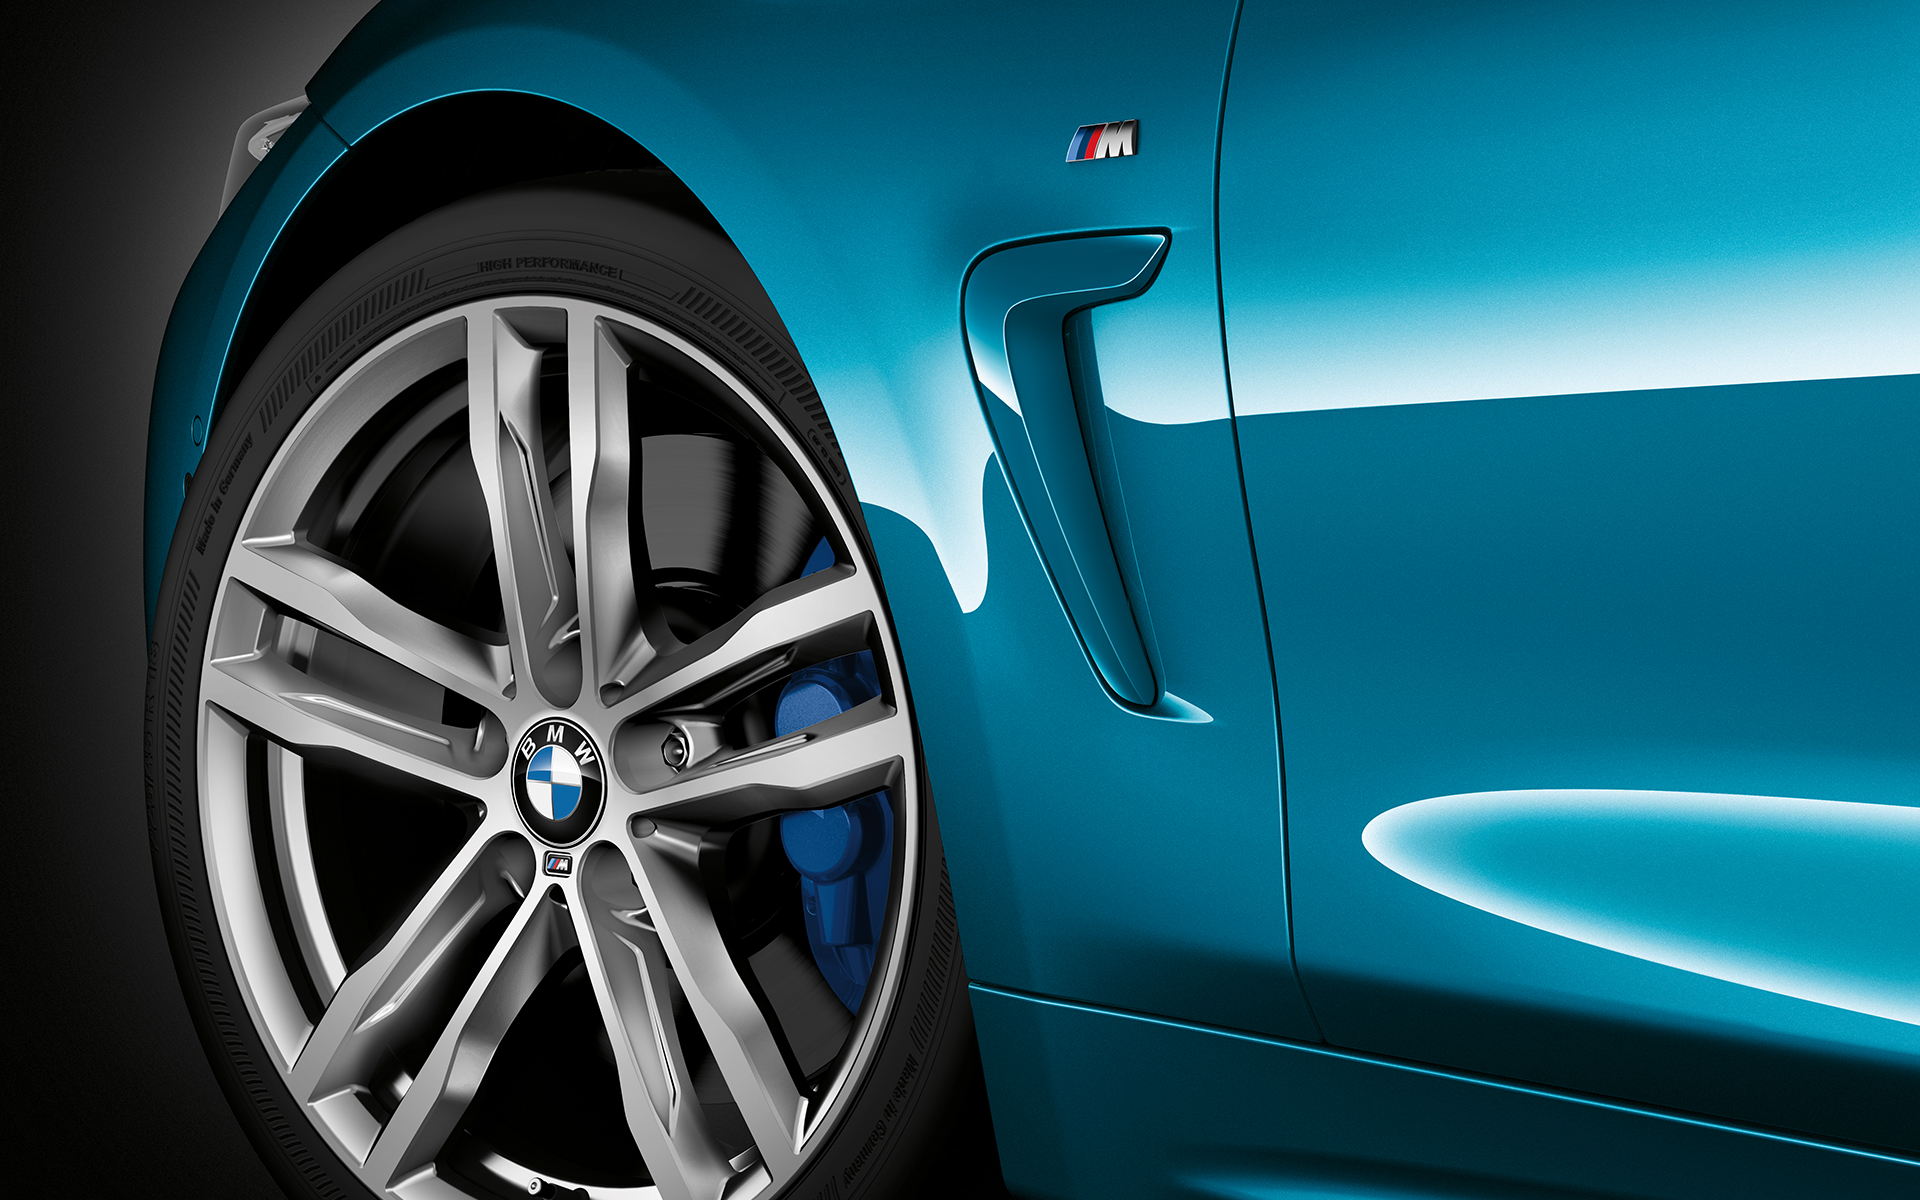 Logotipo lateral, BMW Serie 4 Coupé.